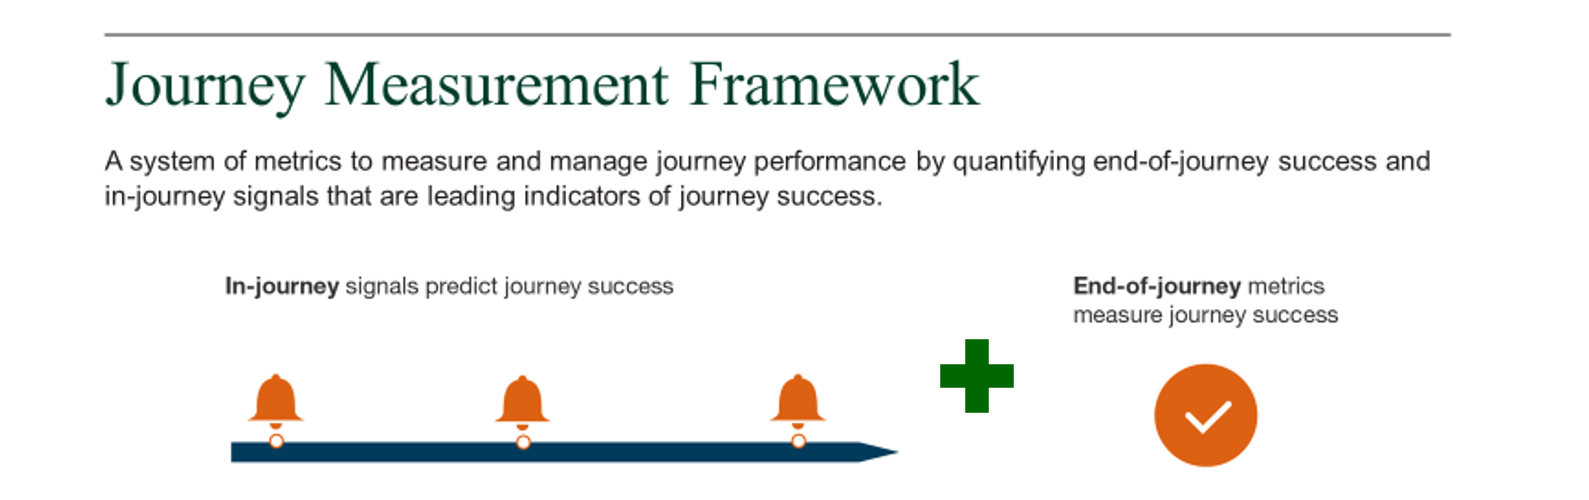 A system of metrics to measure and manage journey performance by quantifying end-of-journey success and in-journey signals that are leading indicators of journey success.